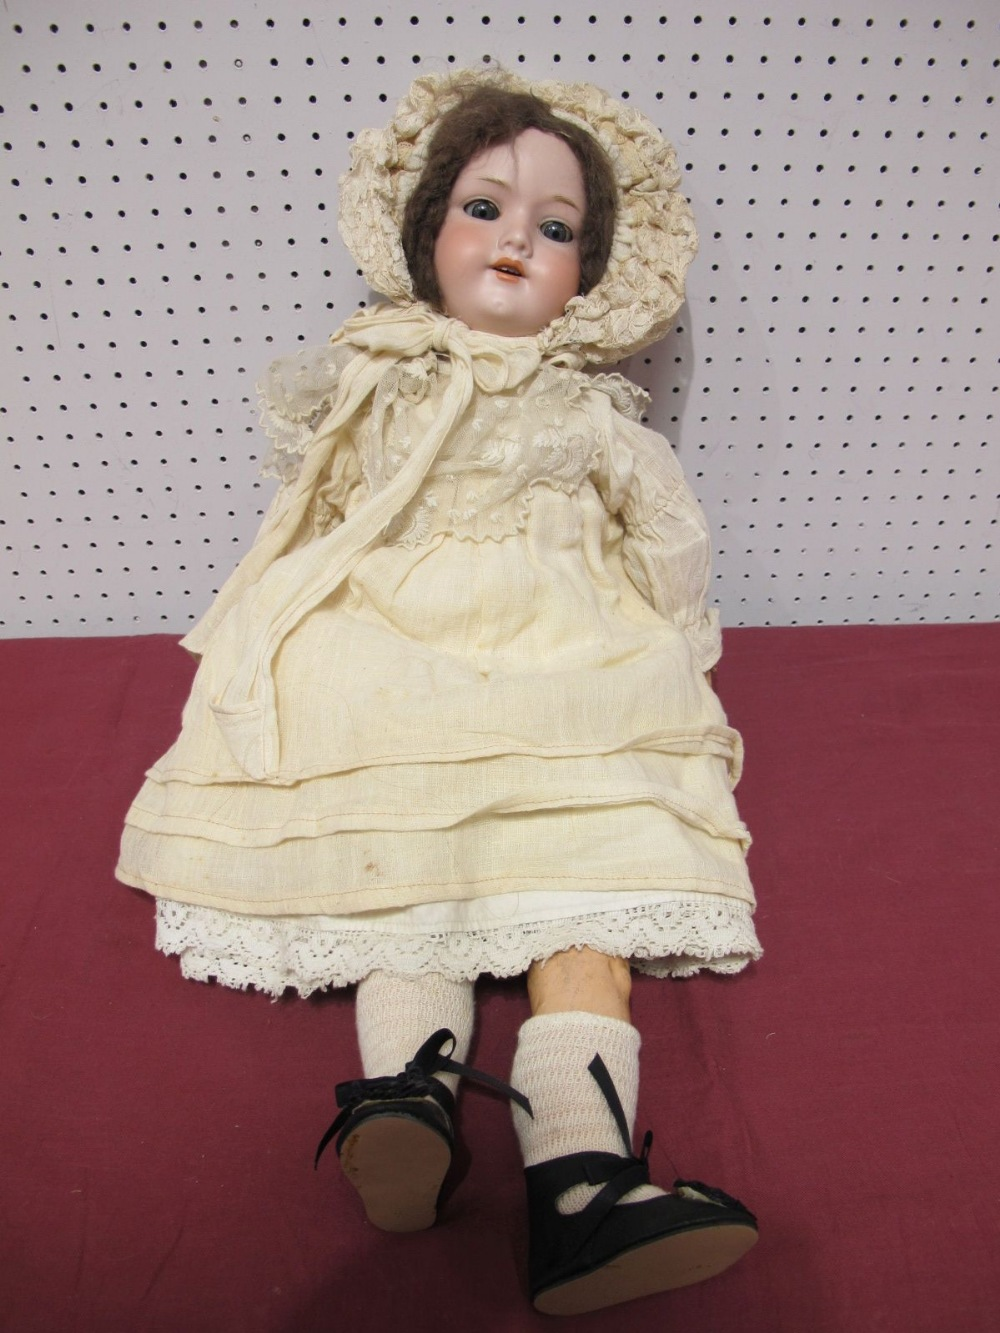 Lot 17 - An Early XX Century Bisque Headed Doll by Armand Marseilles of Germany, head stamped 390/7½M. Sleepy